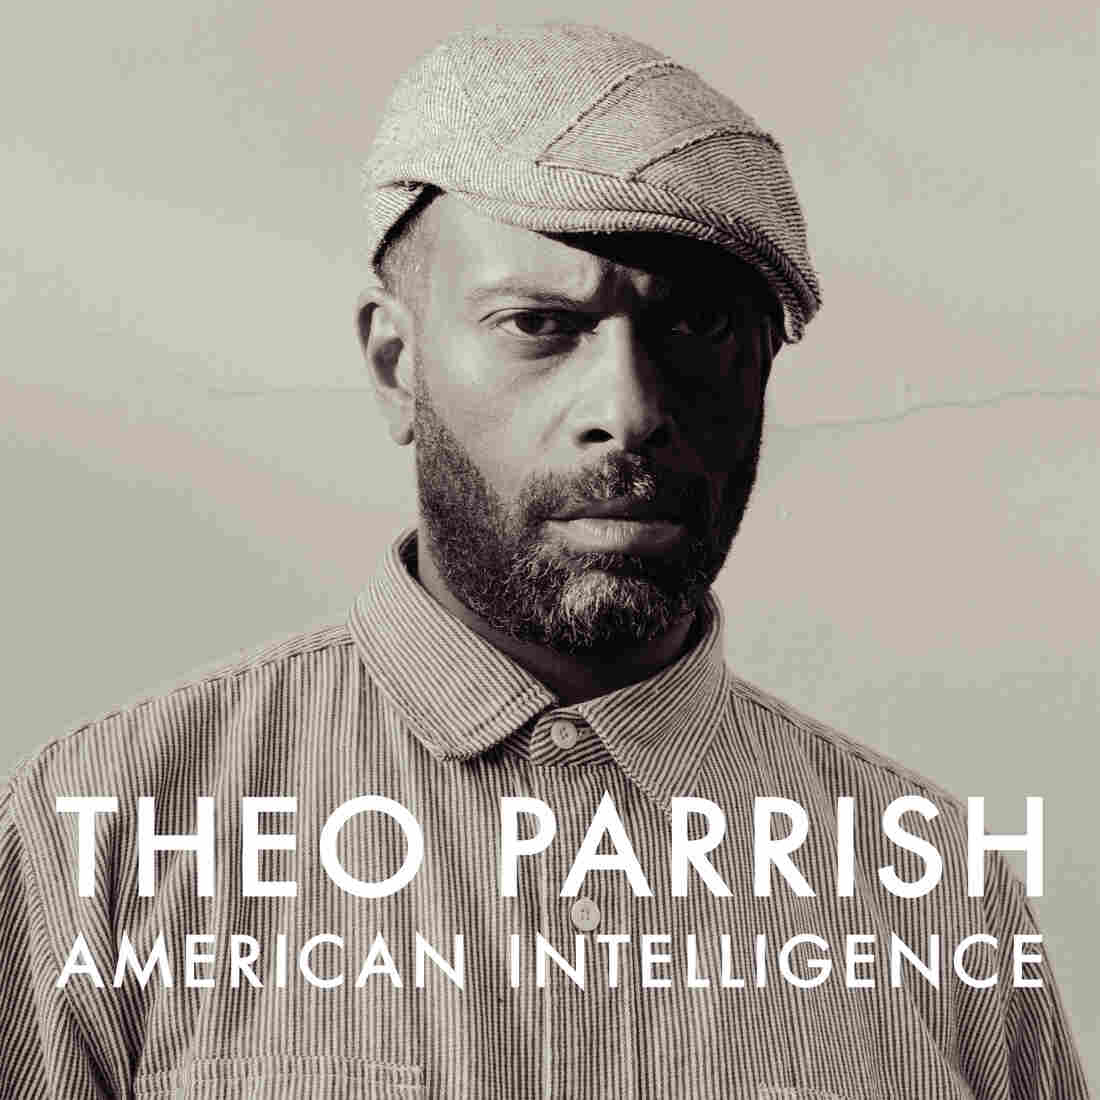 Theo Parrish's new album, American Intelligence, is due out in early December.